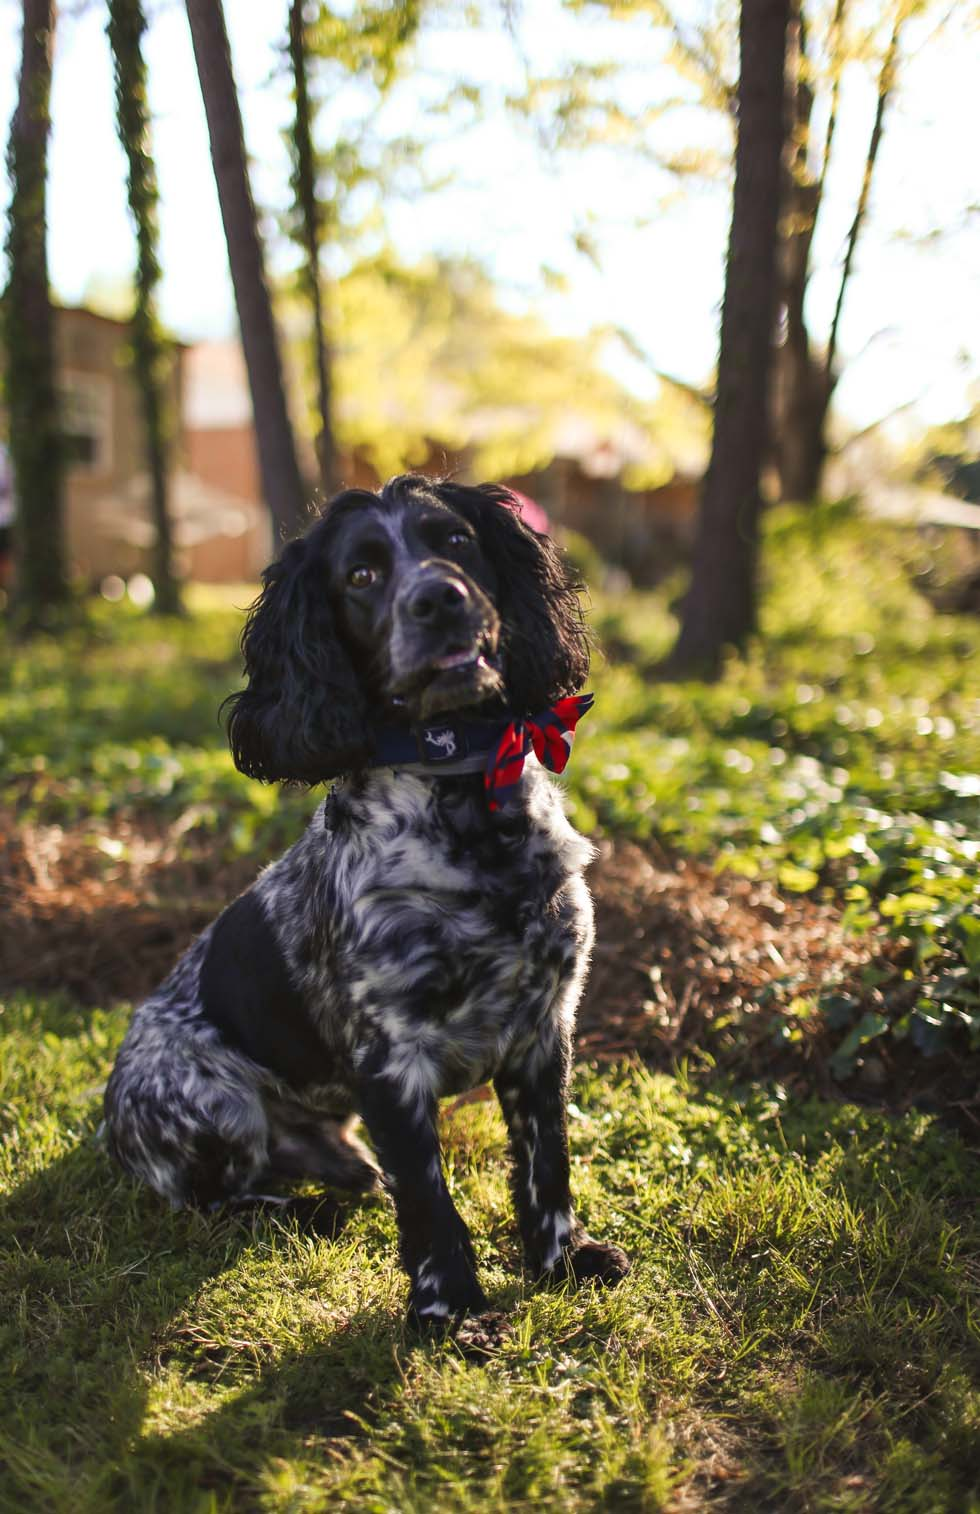 DARLING_LILLY_PHOTOGRAPHY_PUPPYLOVE-3.jpg